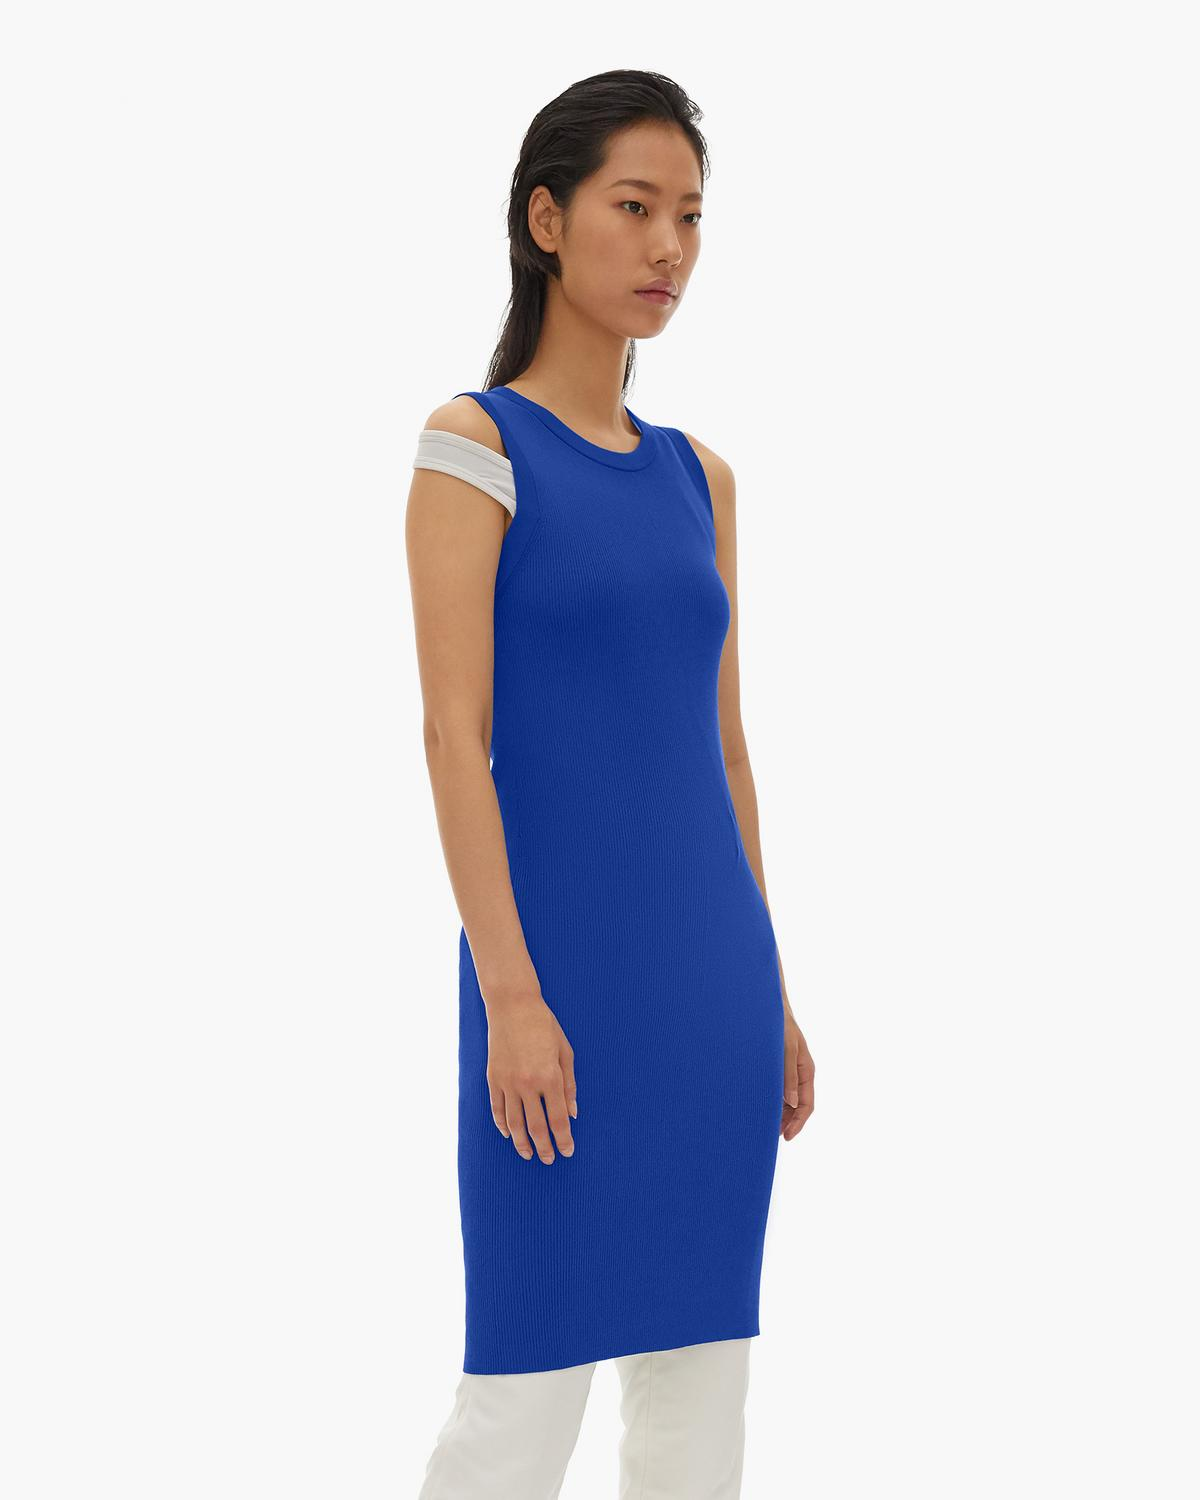 Stretch Viscose Crewneck Dress